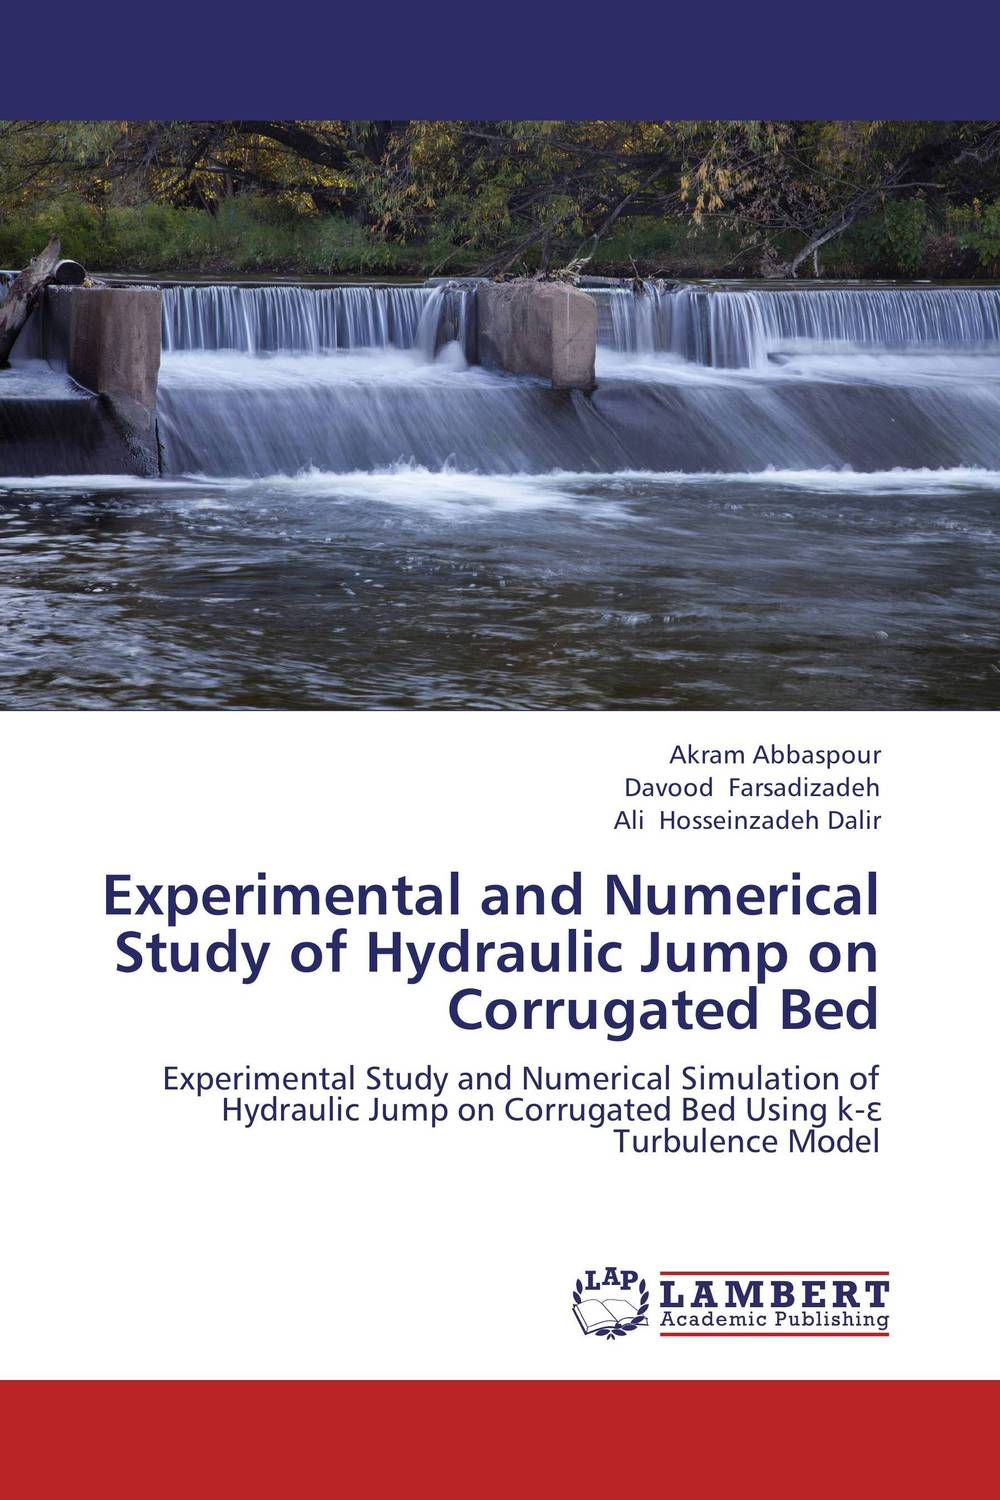 Experimental and Numerical Study of Hydraulic Jump on Corrugated Bed an experimental study on l asparaginase from marine sediments